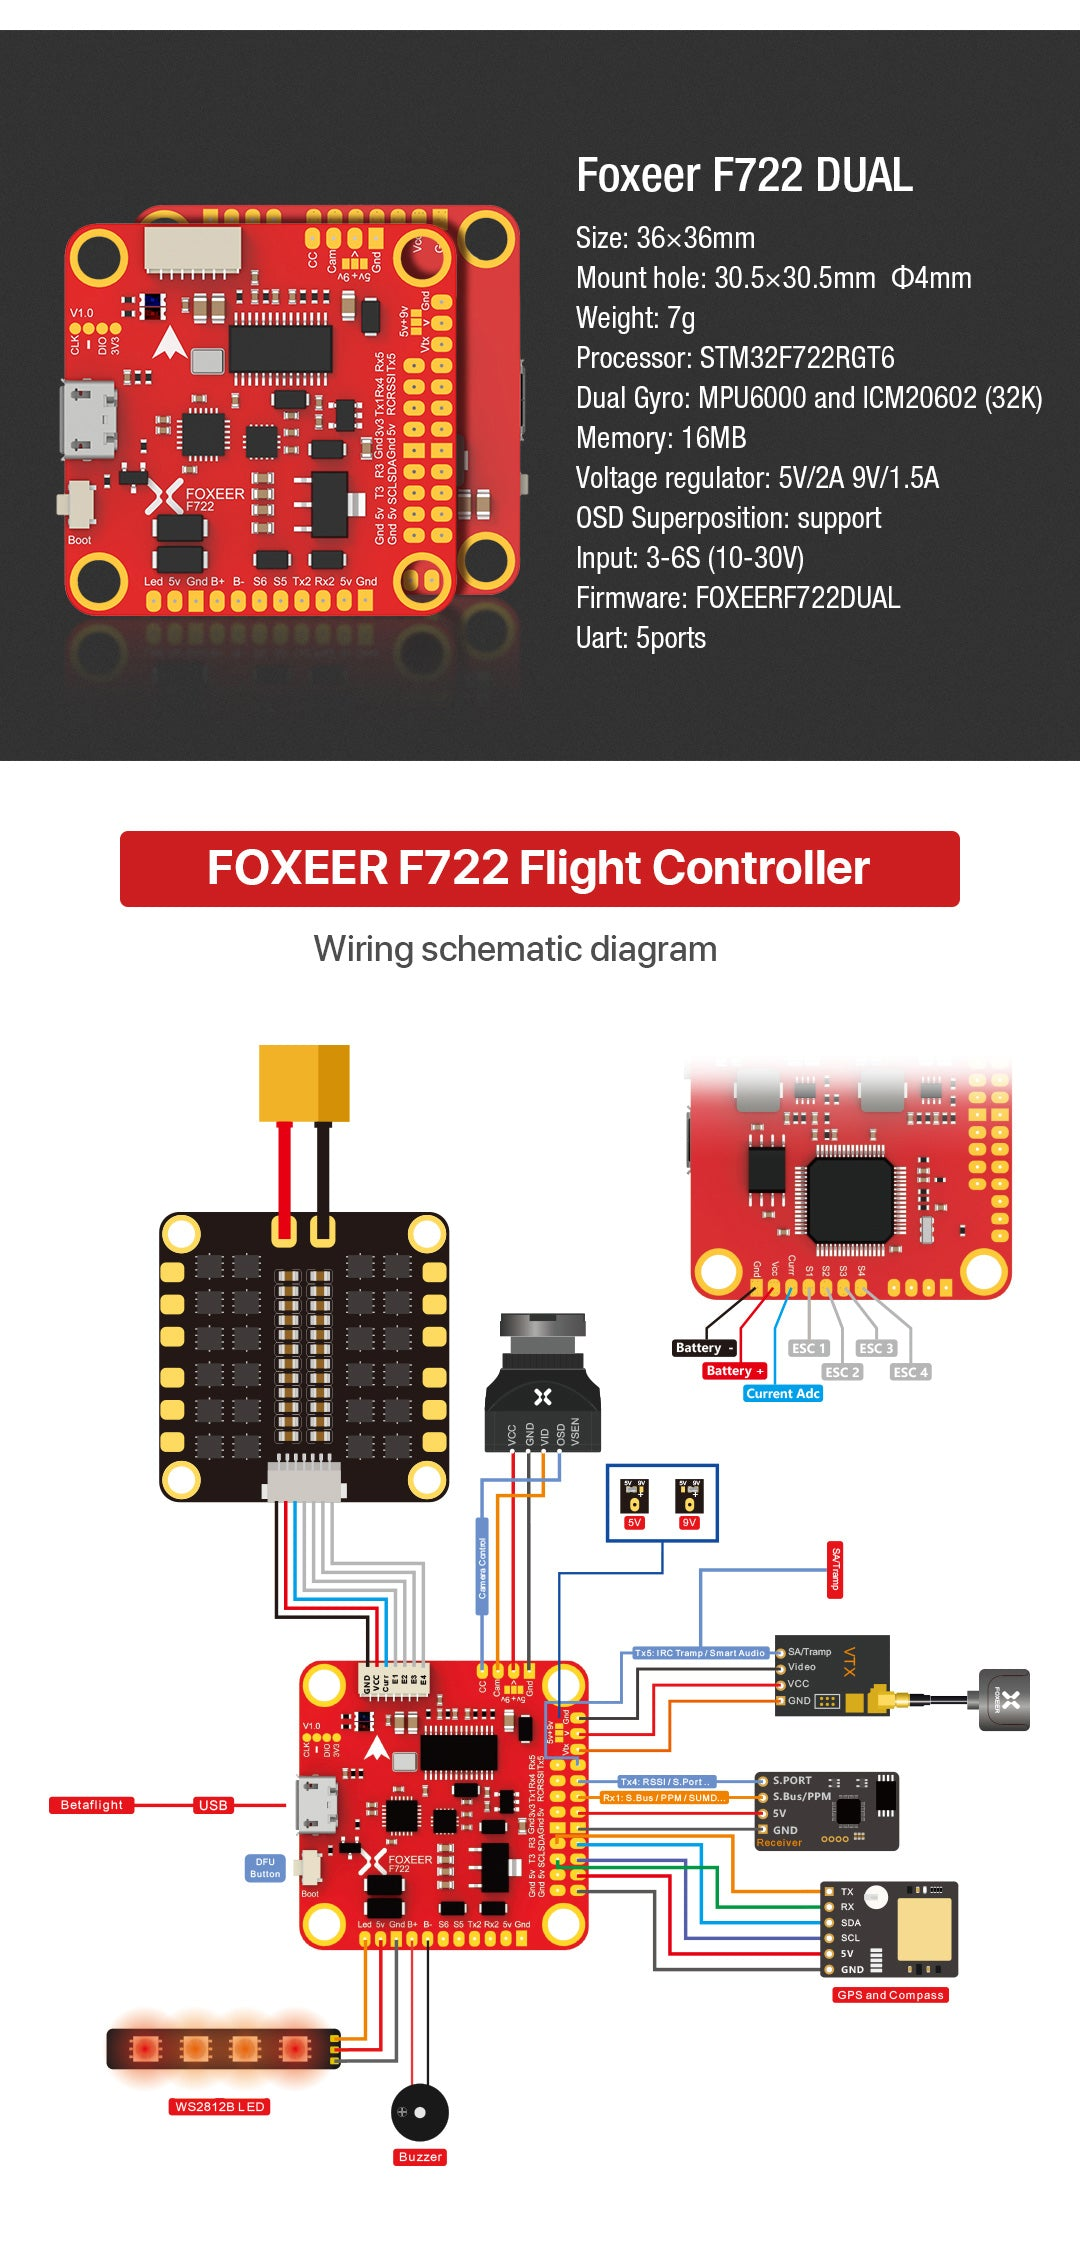 Foxeer F722 Dual Flight Controller